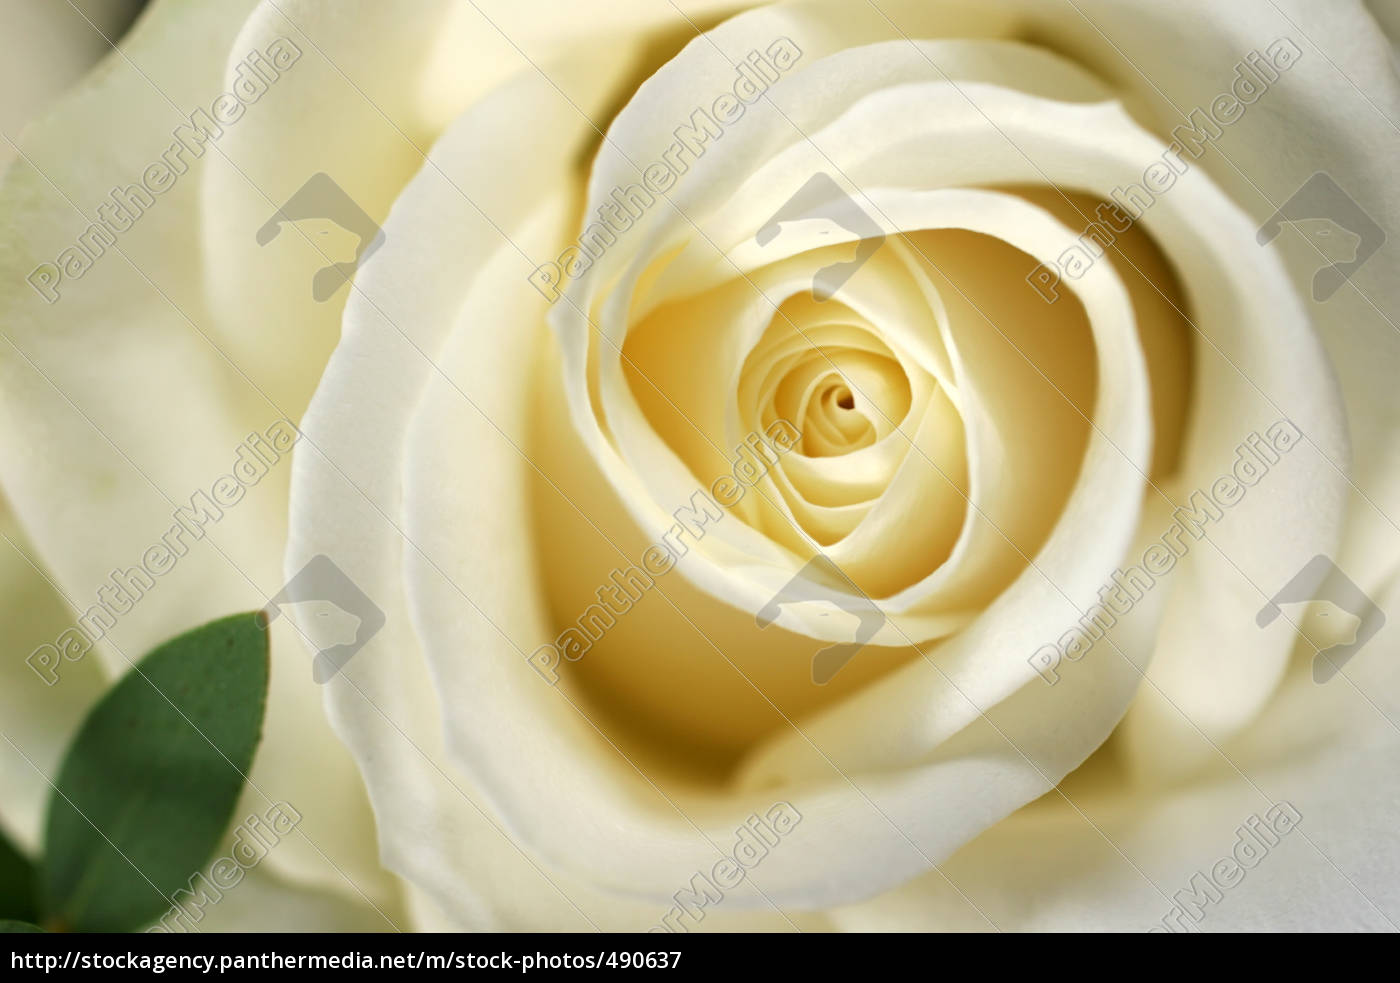 rose, picture - 490637